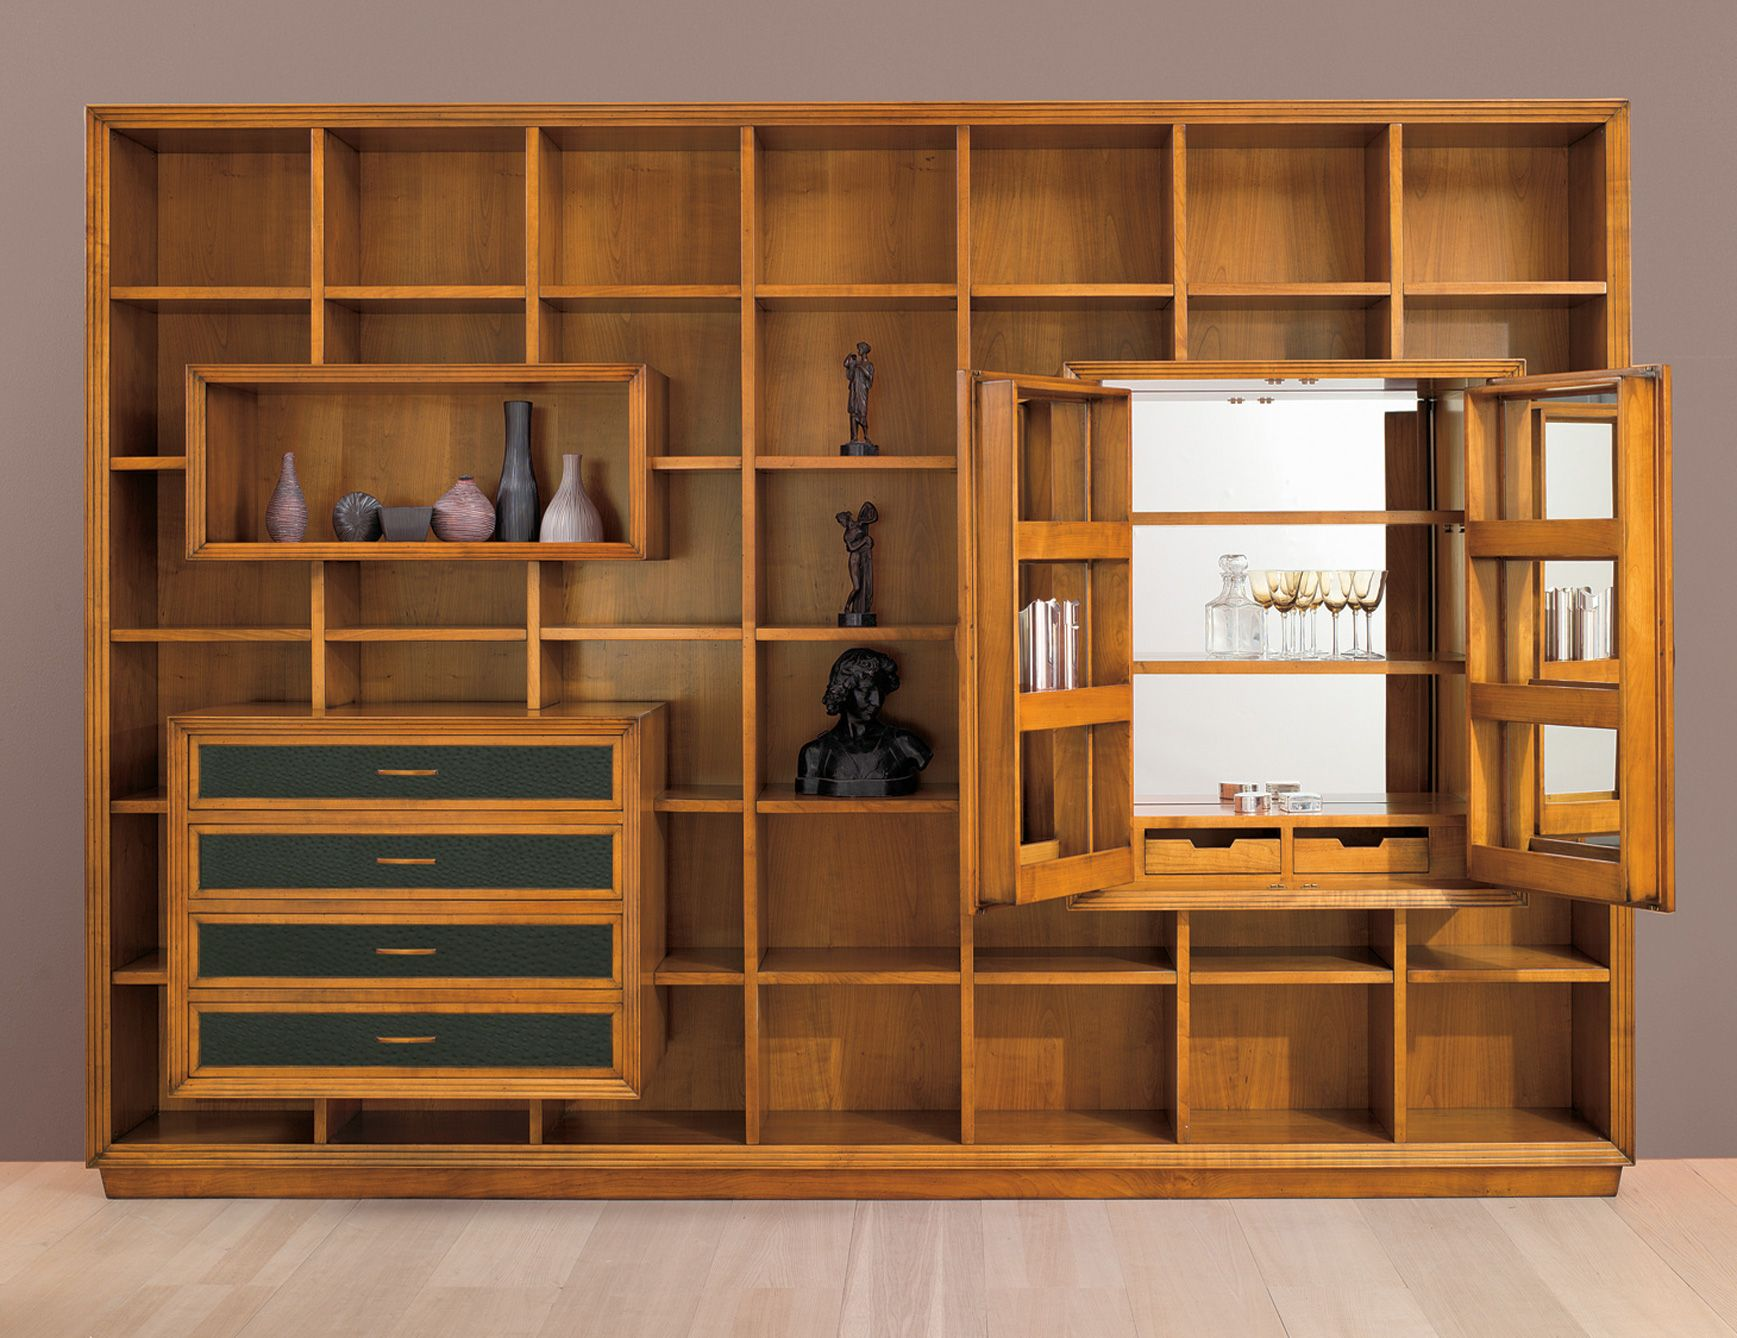 Composition 5 Italian Designer Modular Wall Unit And Bookcase System With A  Mirrored Bar Handmade In Cherrywood. Available In Various Wood Finishes.